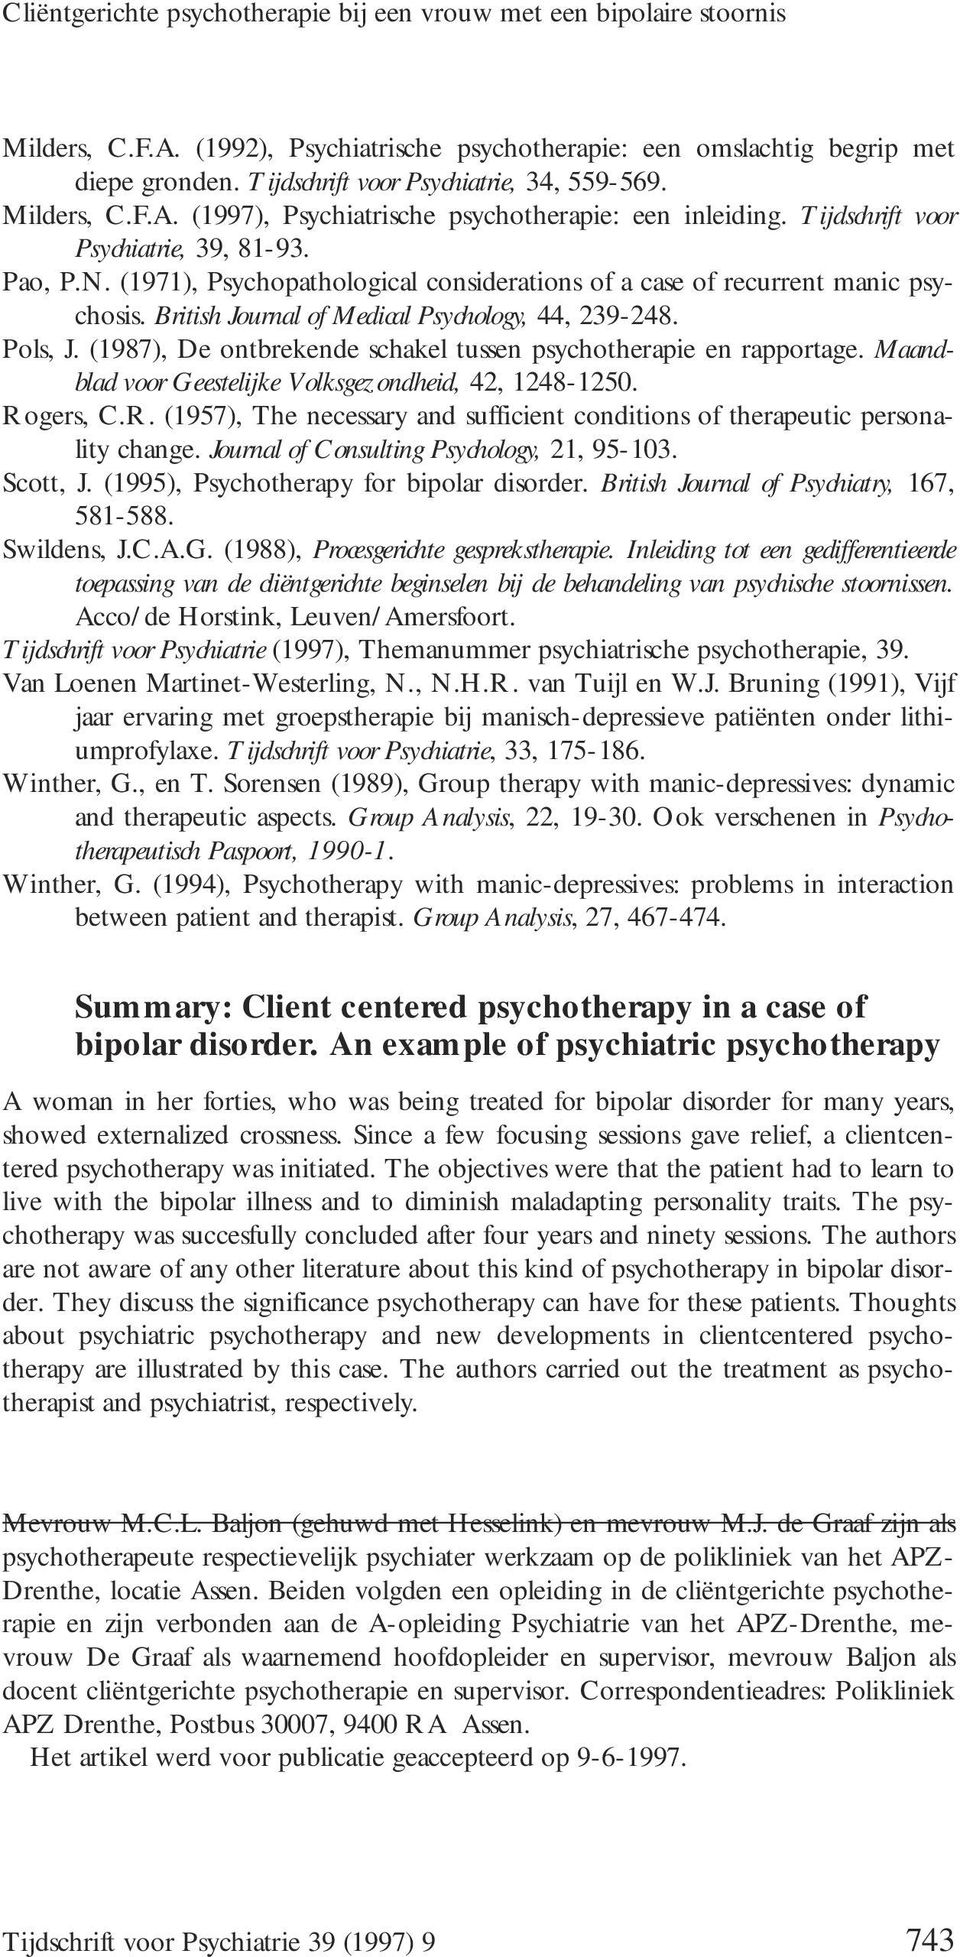 (1971), Psychopathological considerations of a case of recurrent manic psychosis. British Journal of Medical Psychology, 44, 239-248. Pols, J.